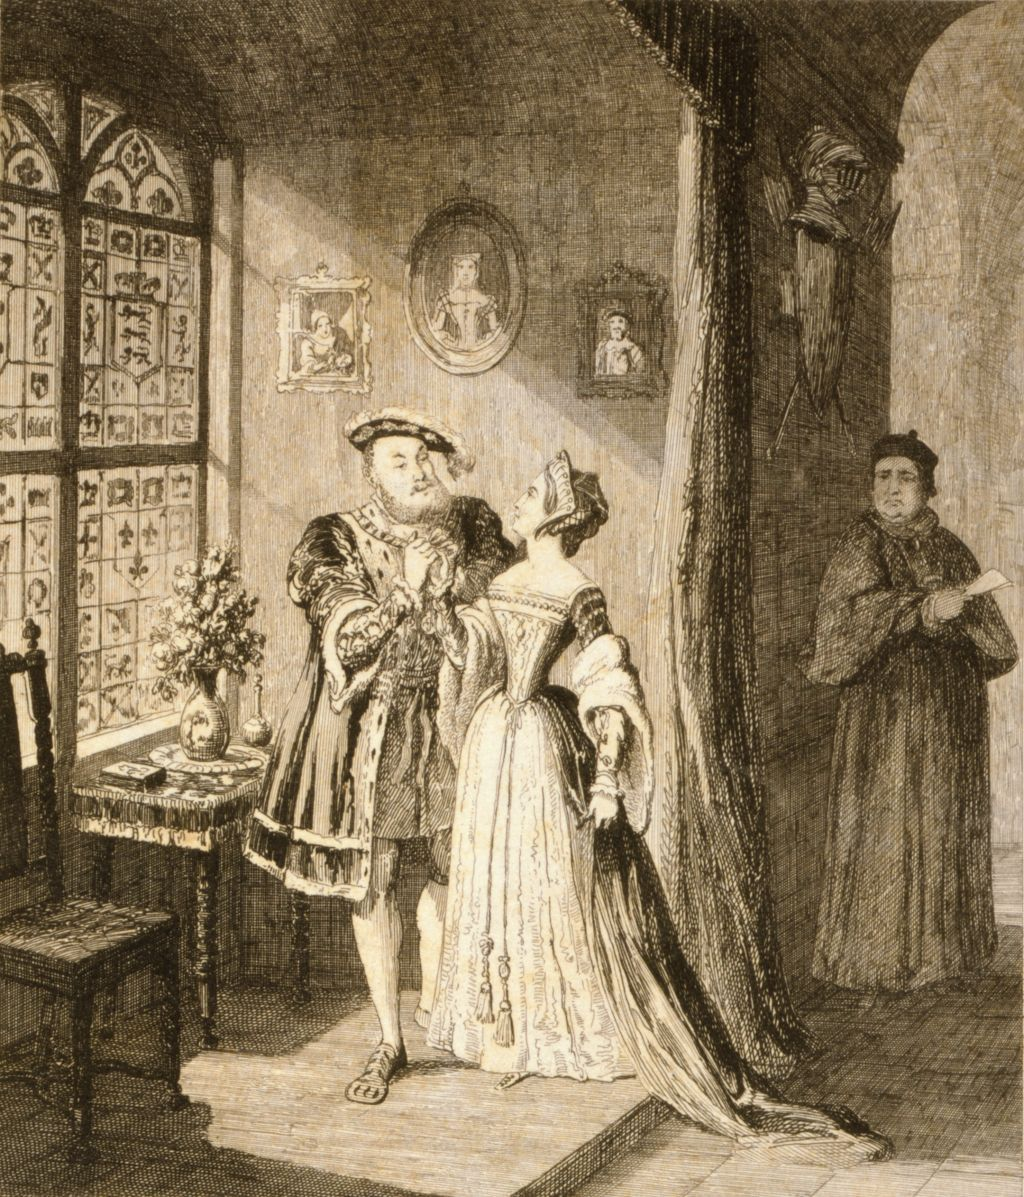 reformation henry viii essay Who launched the protestant reformation in the 1500s  what role did henry viii play in the reformation  henry matisse essays.